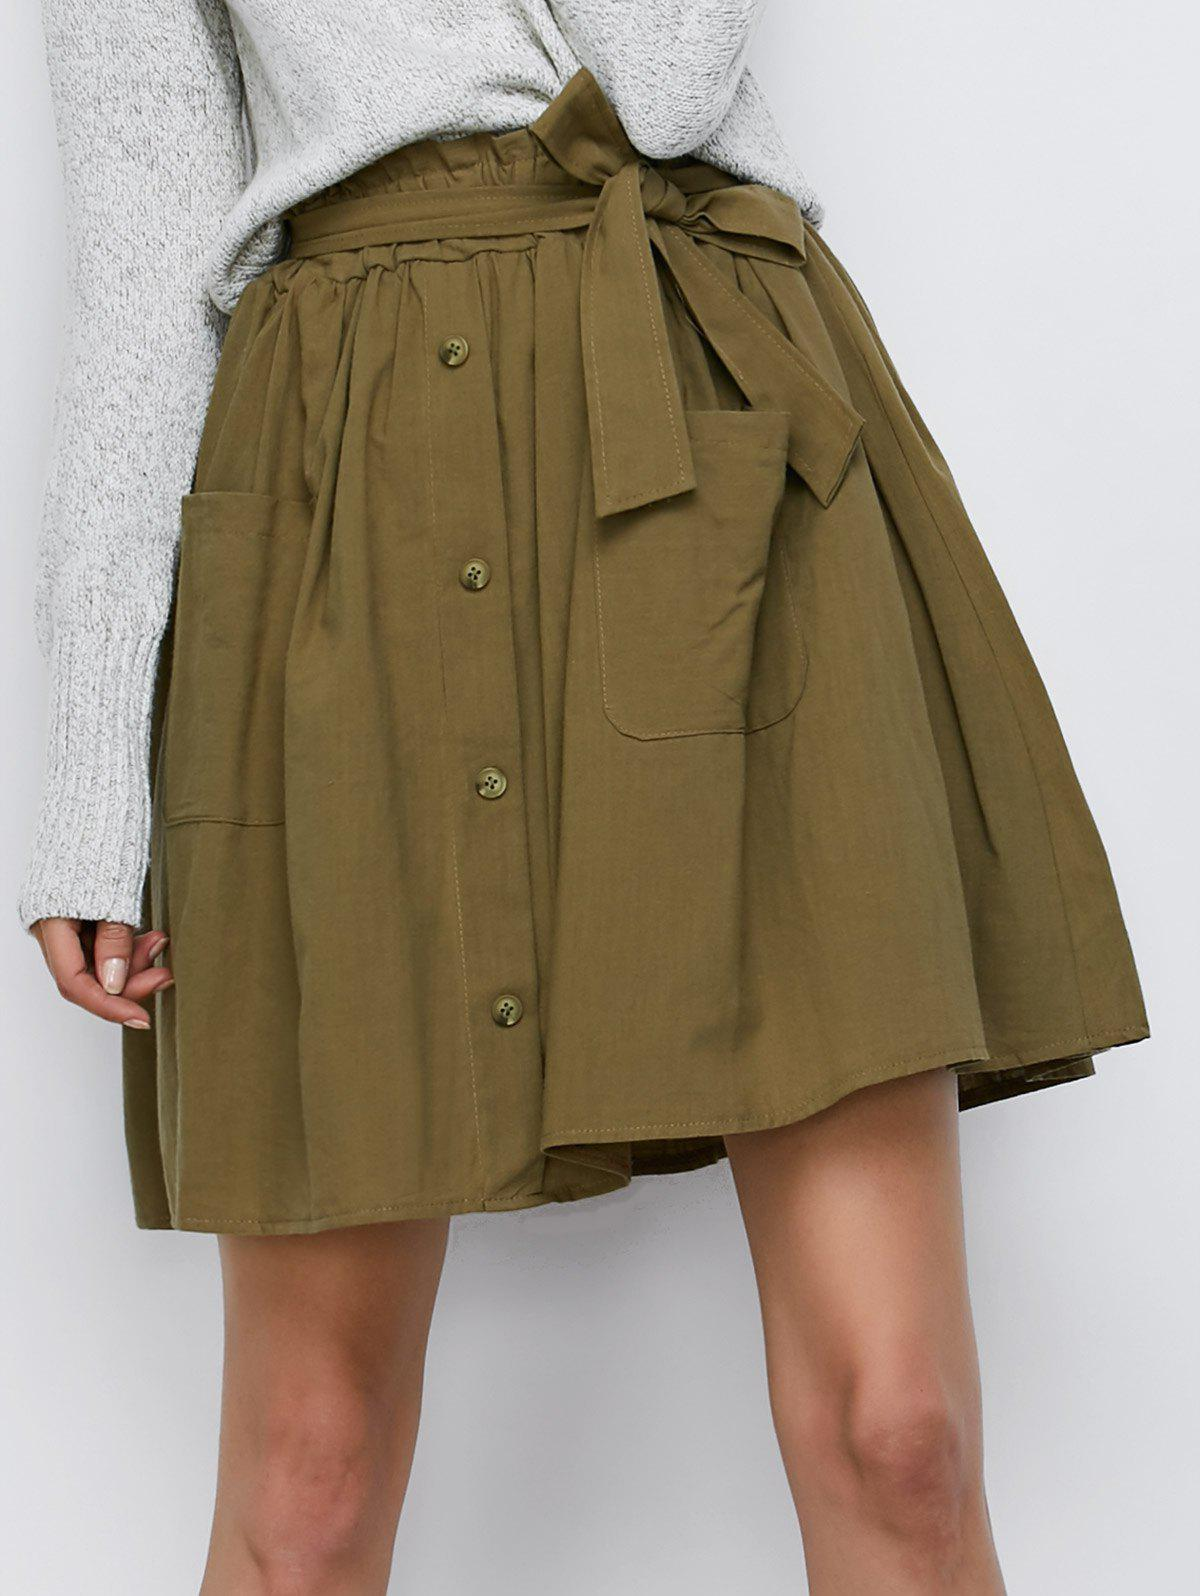 8ed8556de90735 28% OFF] Button Up Belted Mini Skirt With Pockets | Rosegal